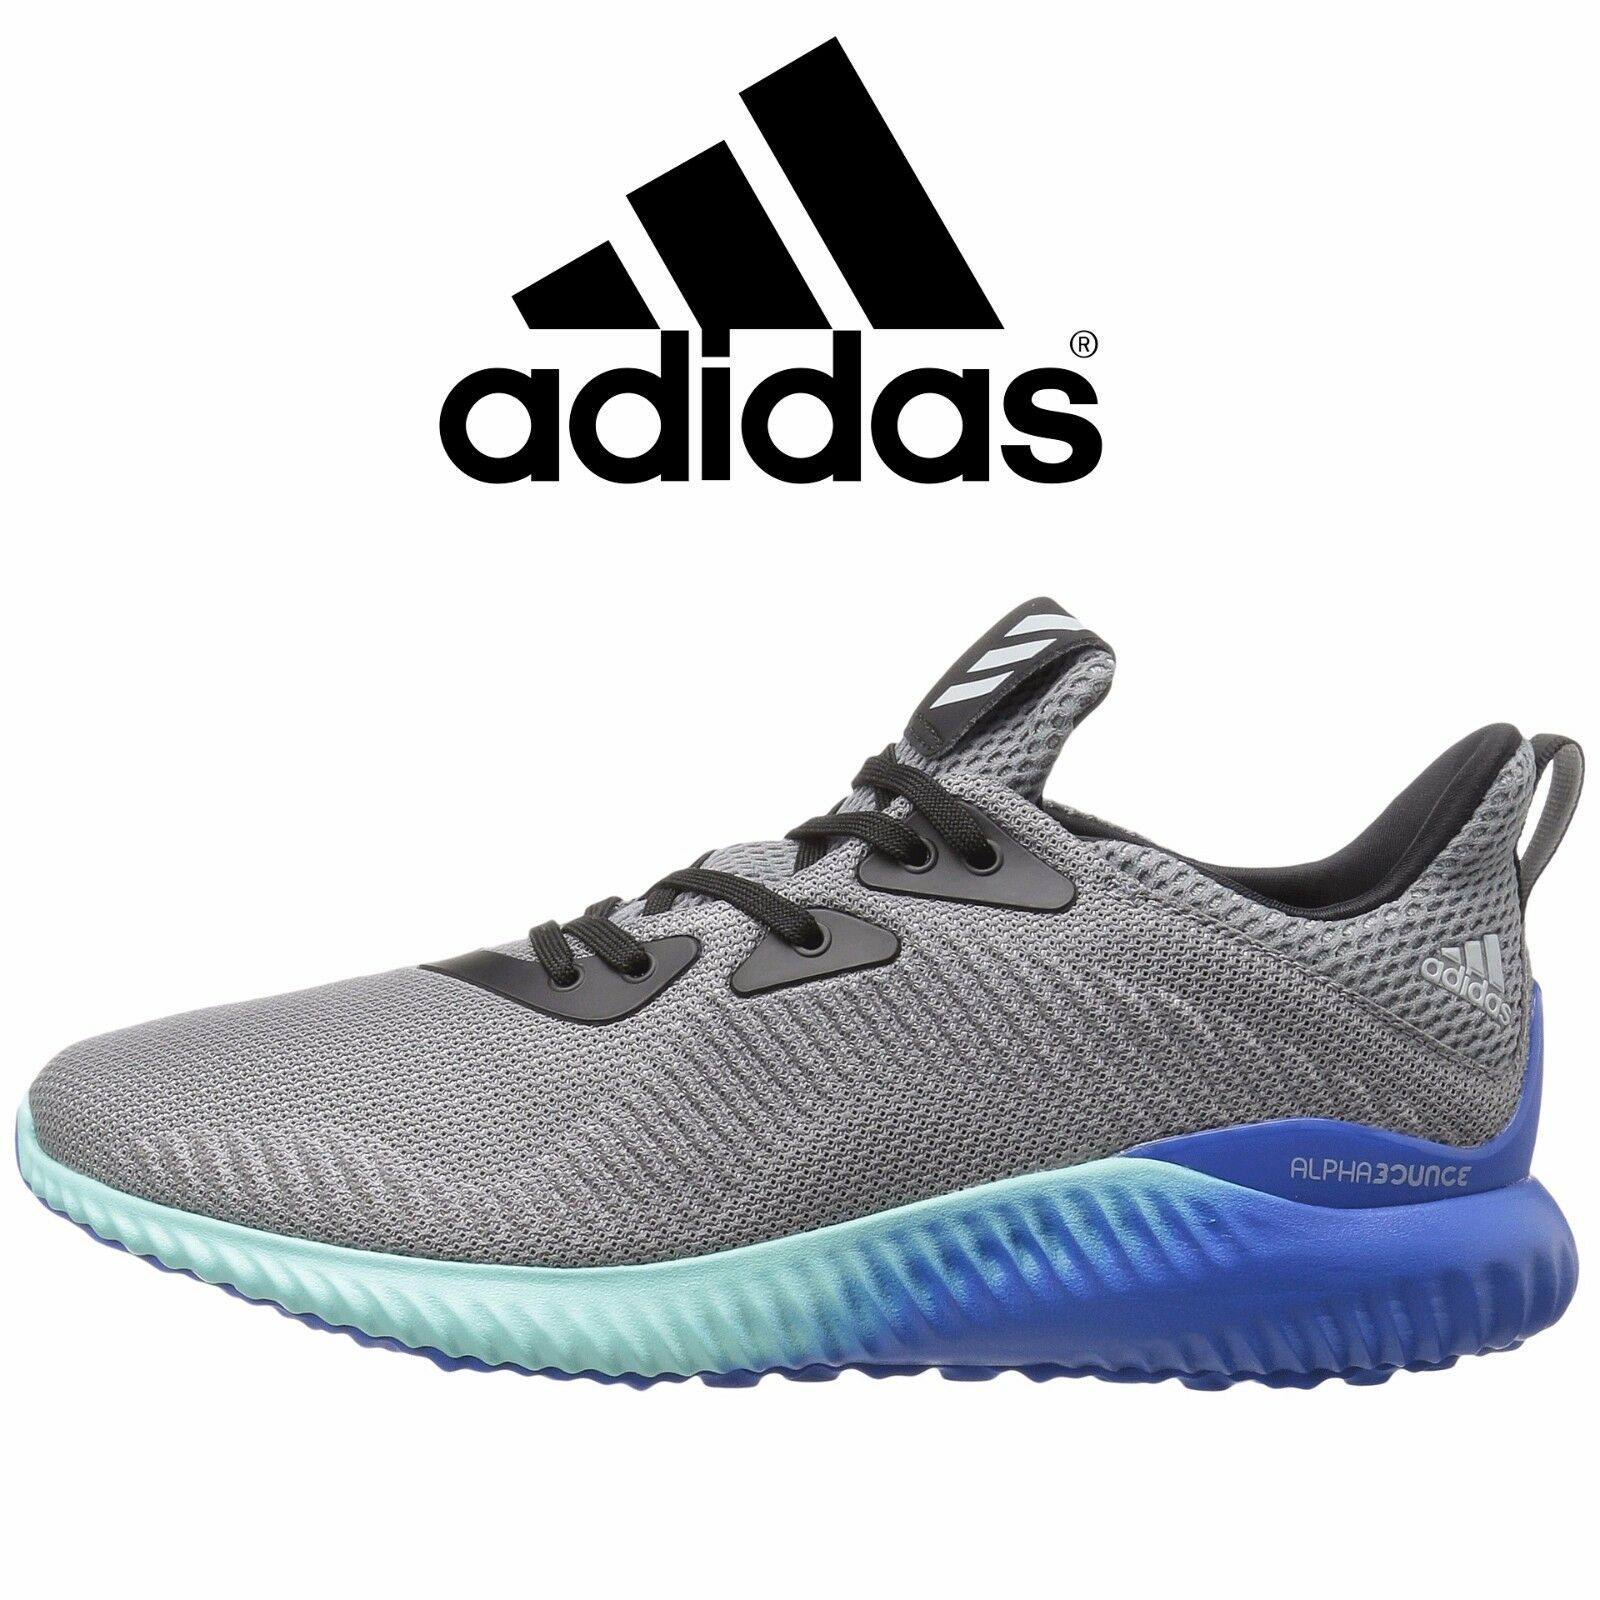 adidas 8. picture 1 of 7 adidas 8 /